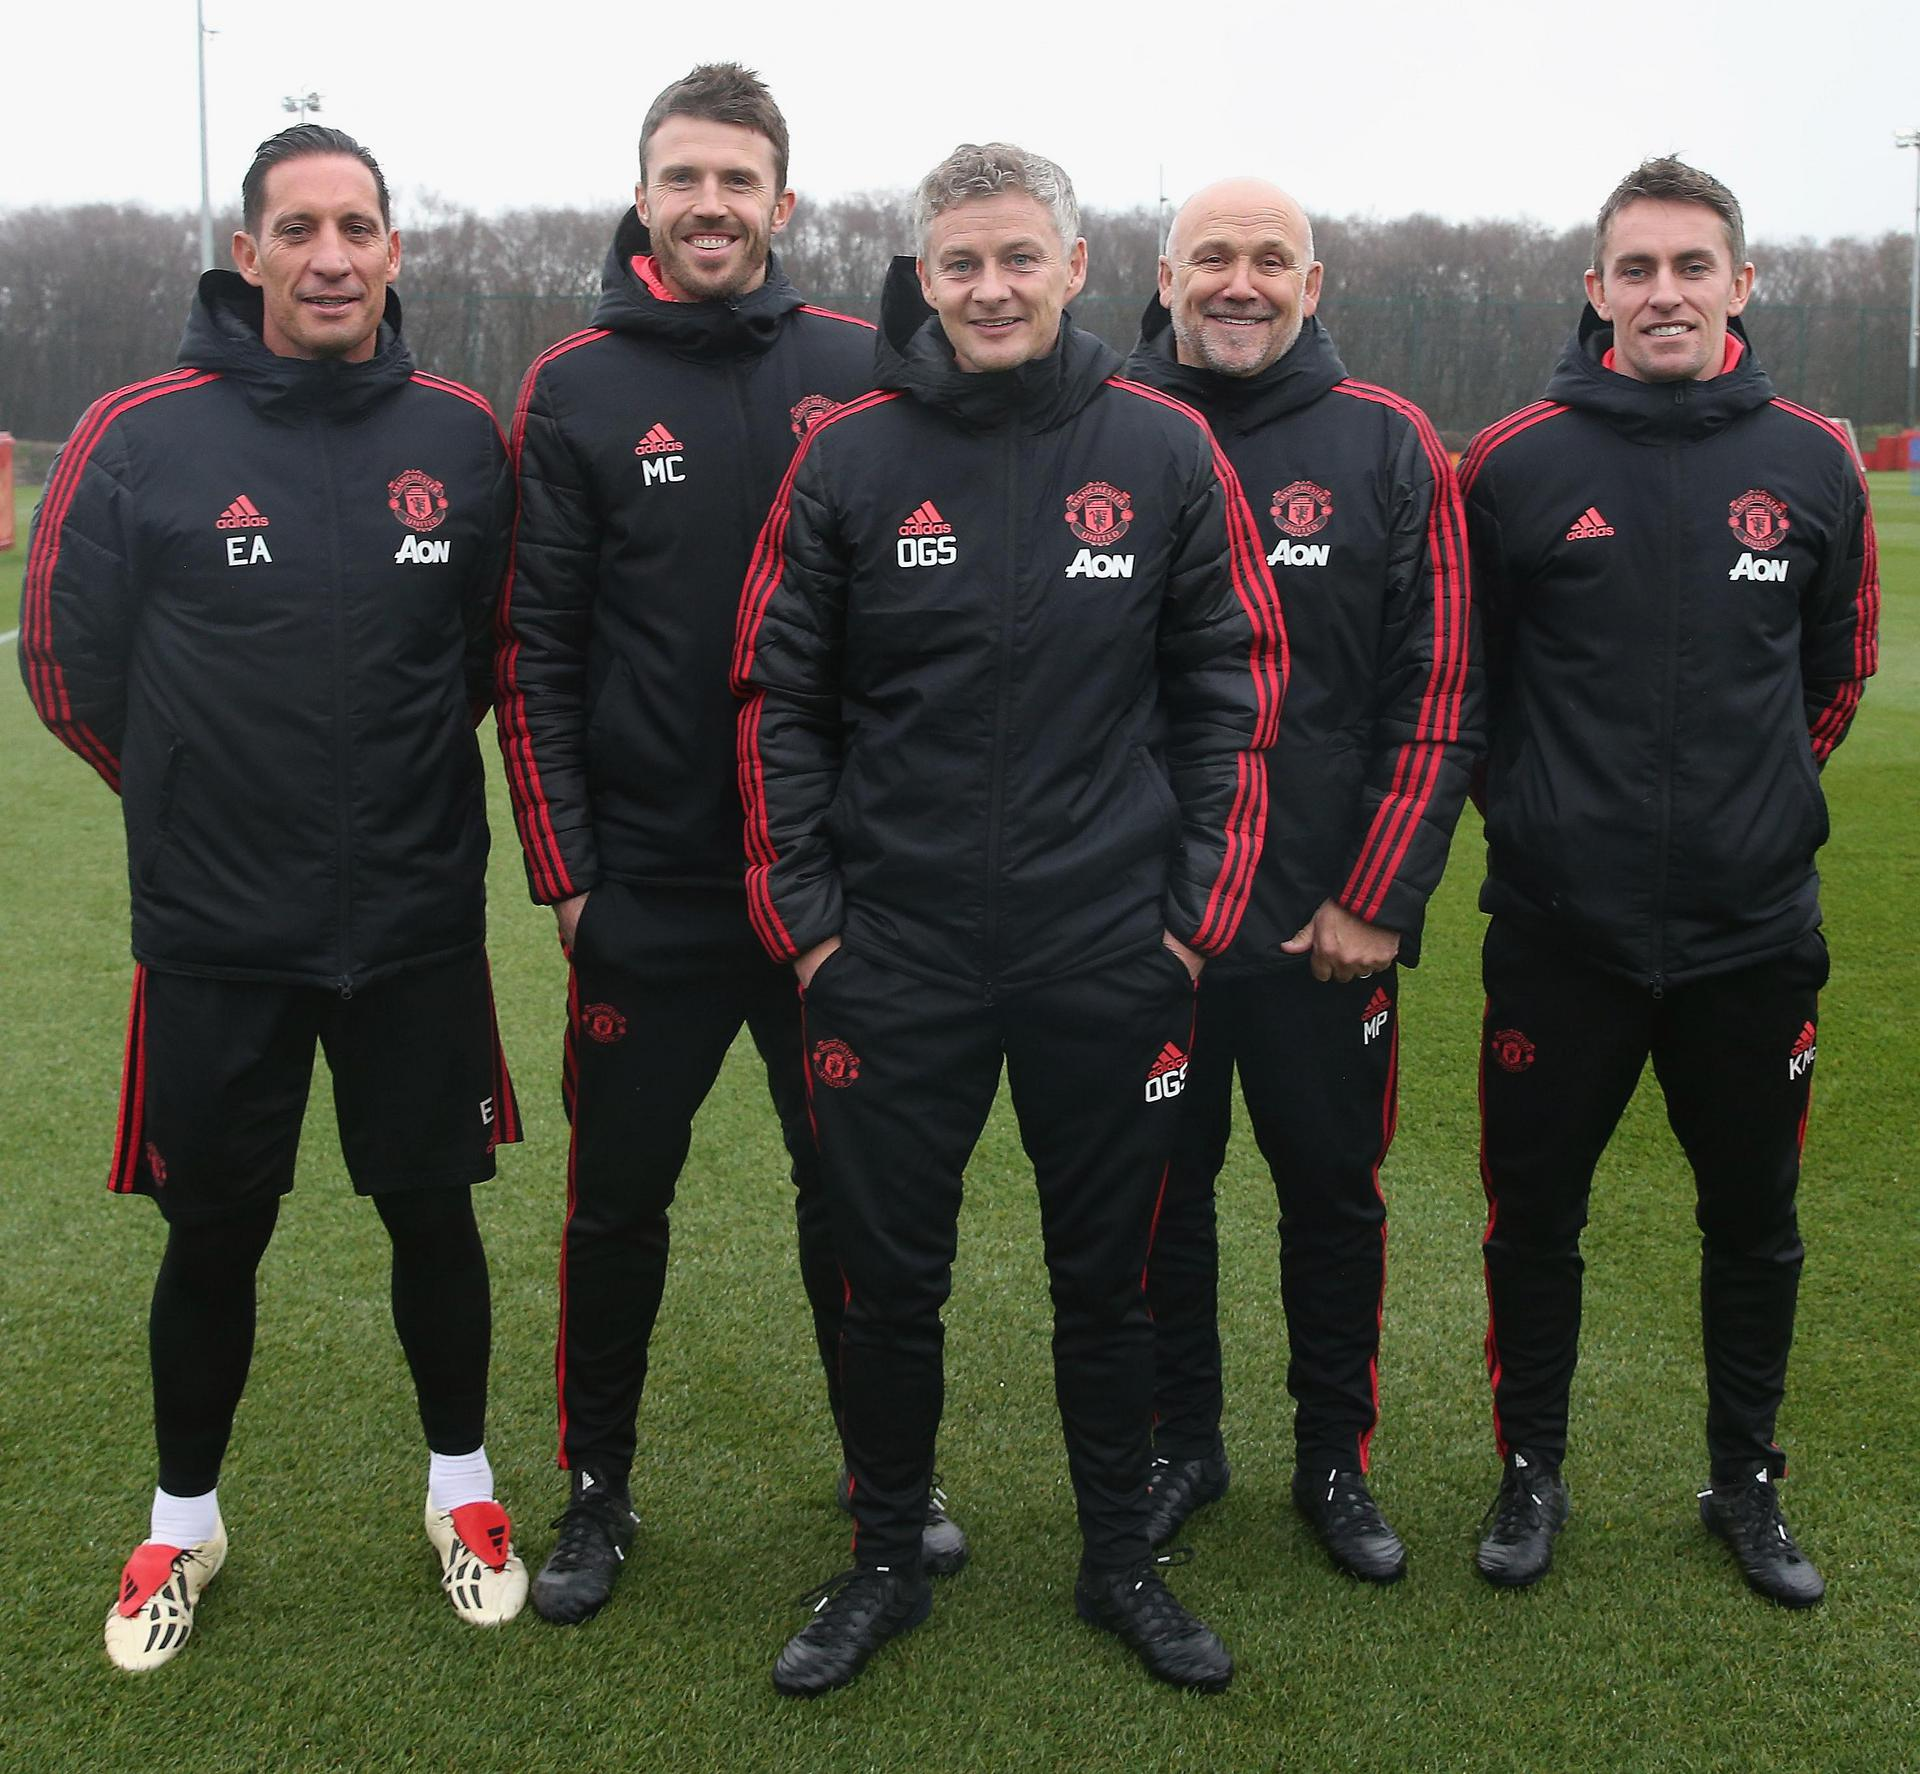 Gallery Ole Gunnar Solskjaer And His United Coaches Manchester United